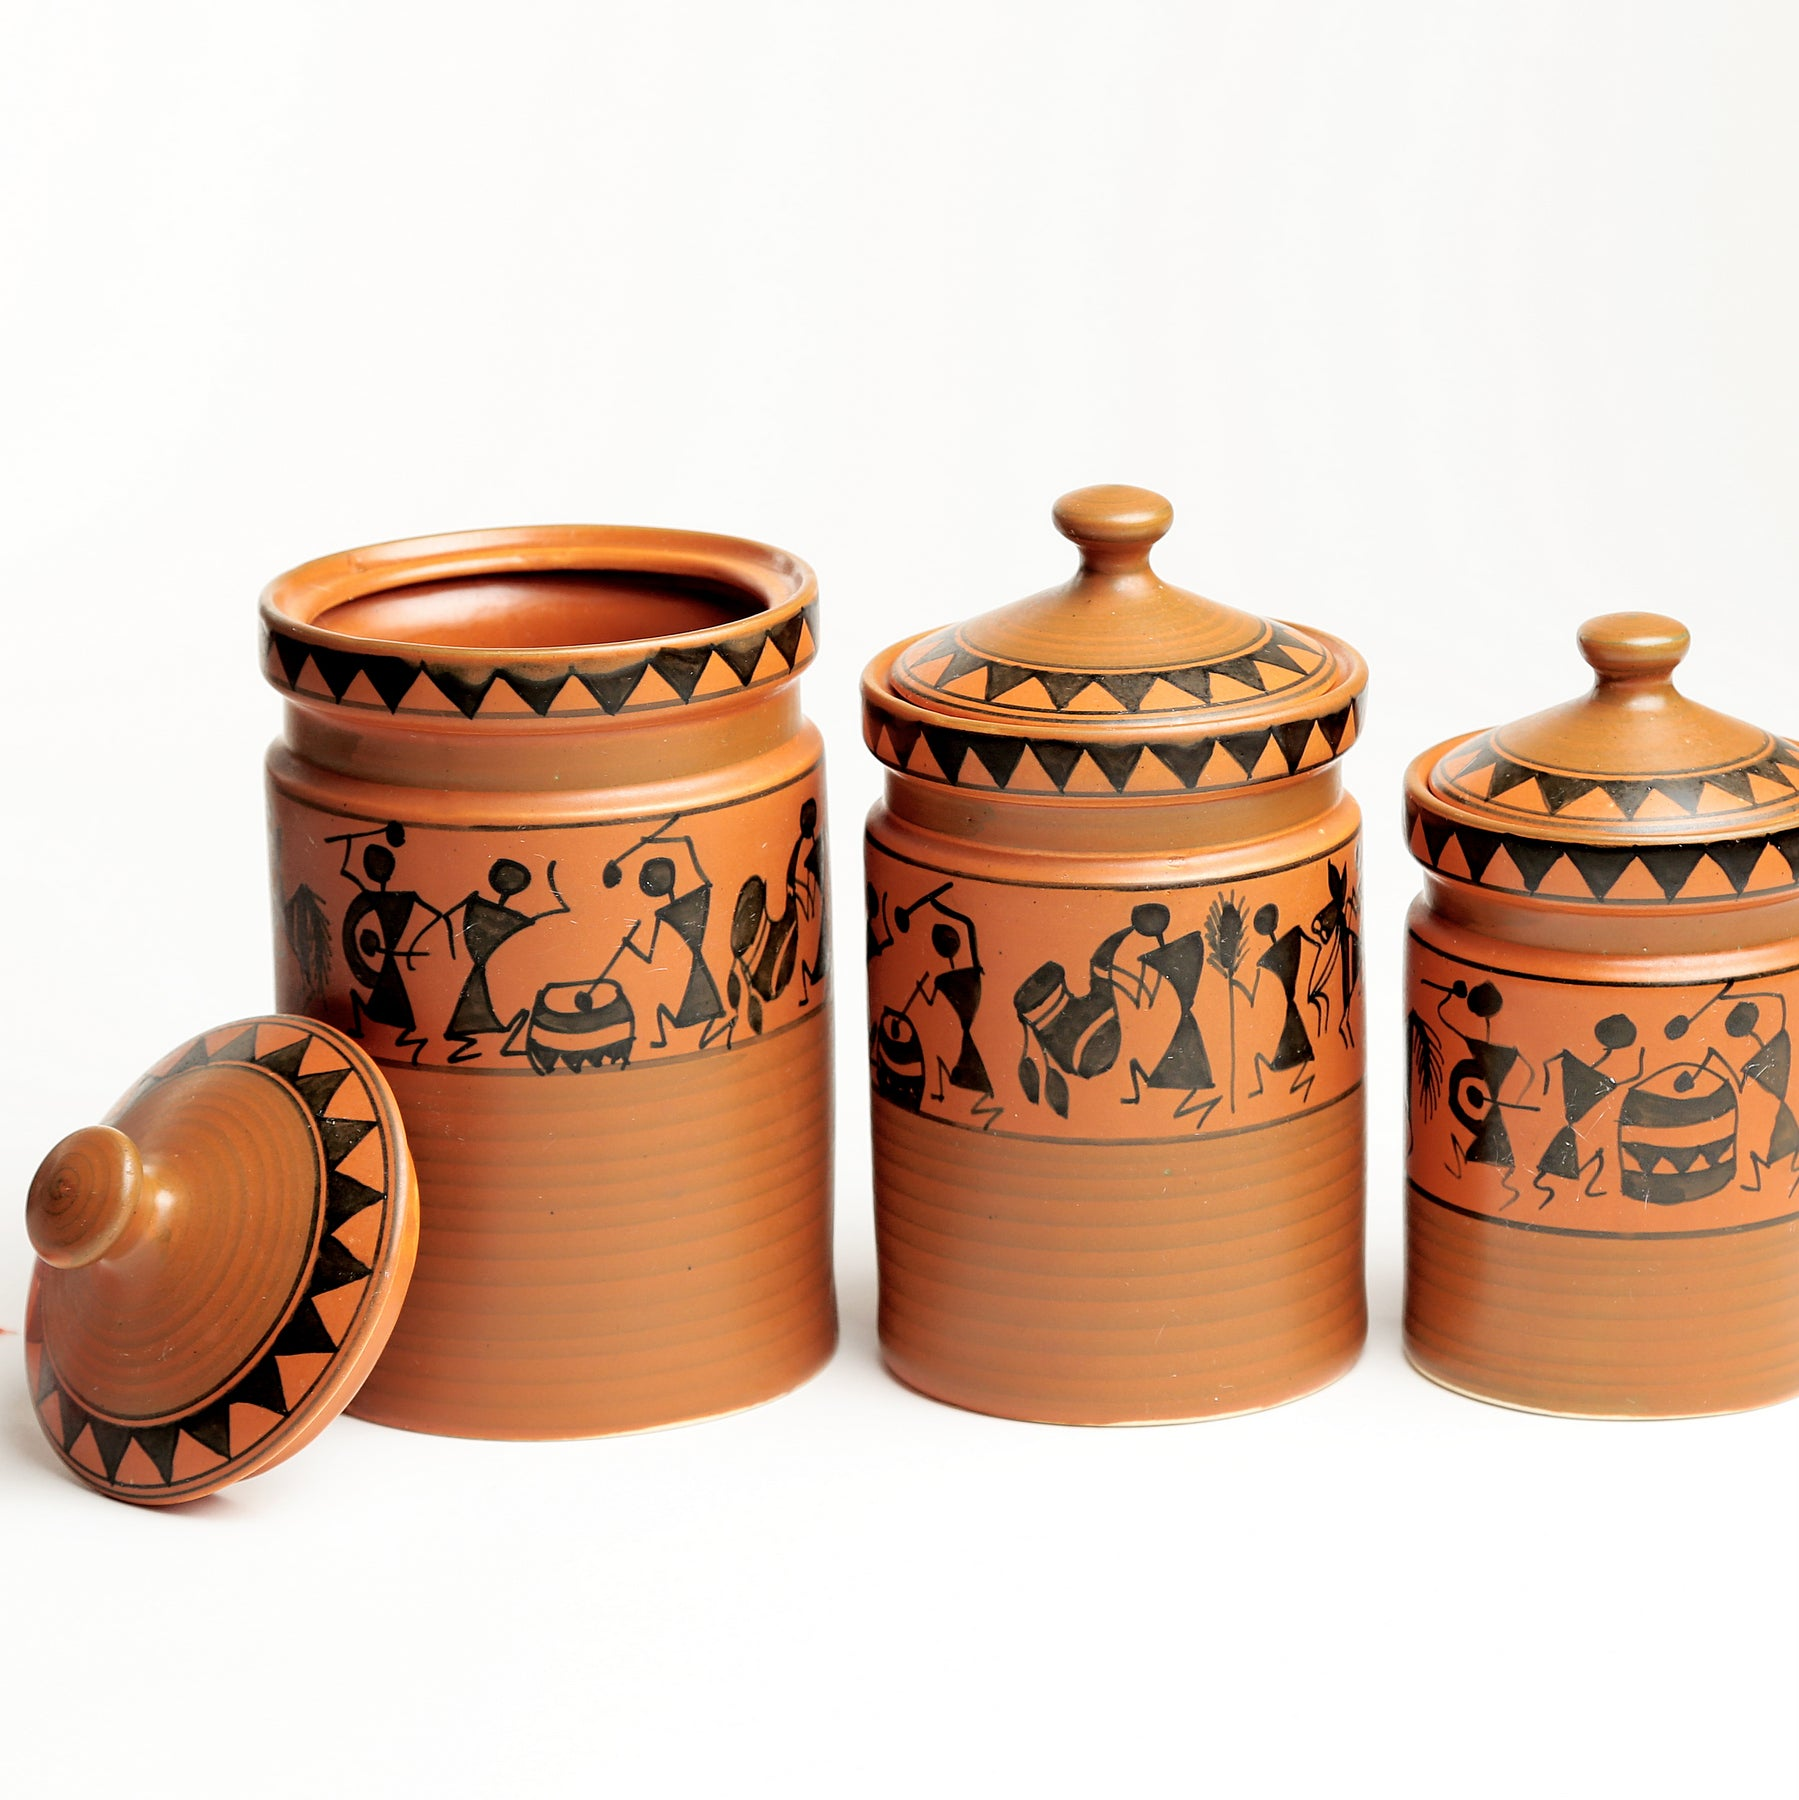 Terracotta Warli Handpainted Ceramic Cookie Jars/Barni/Containers - Set of 3